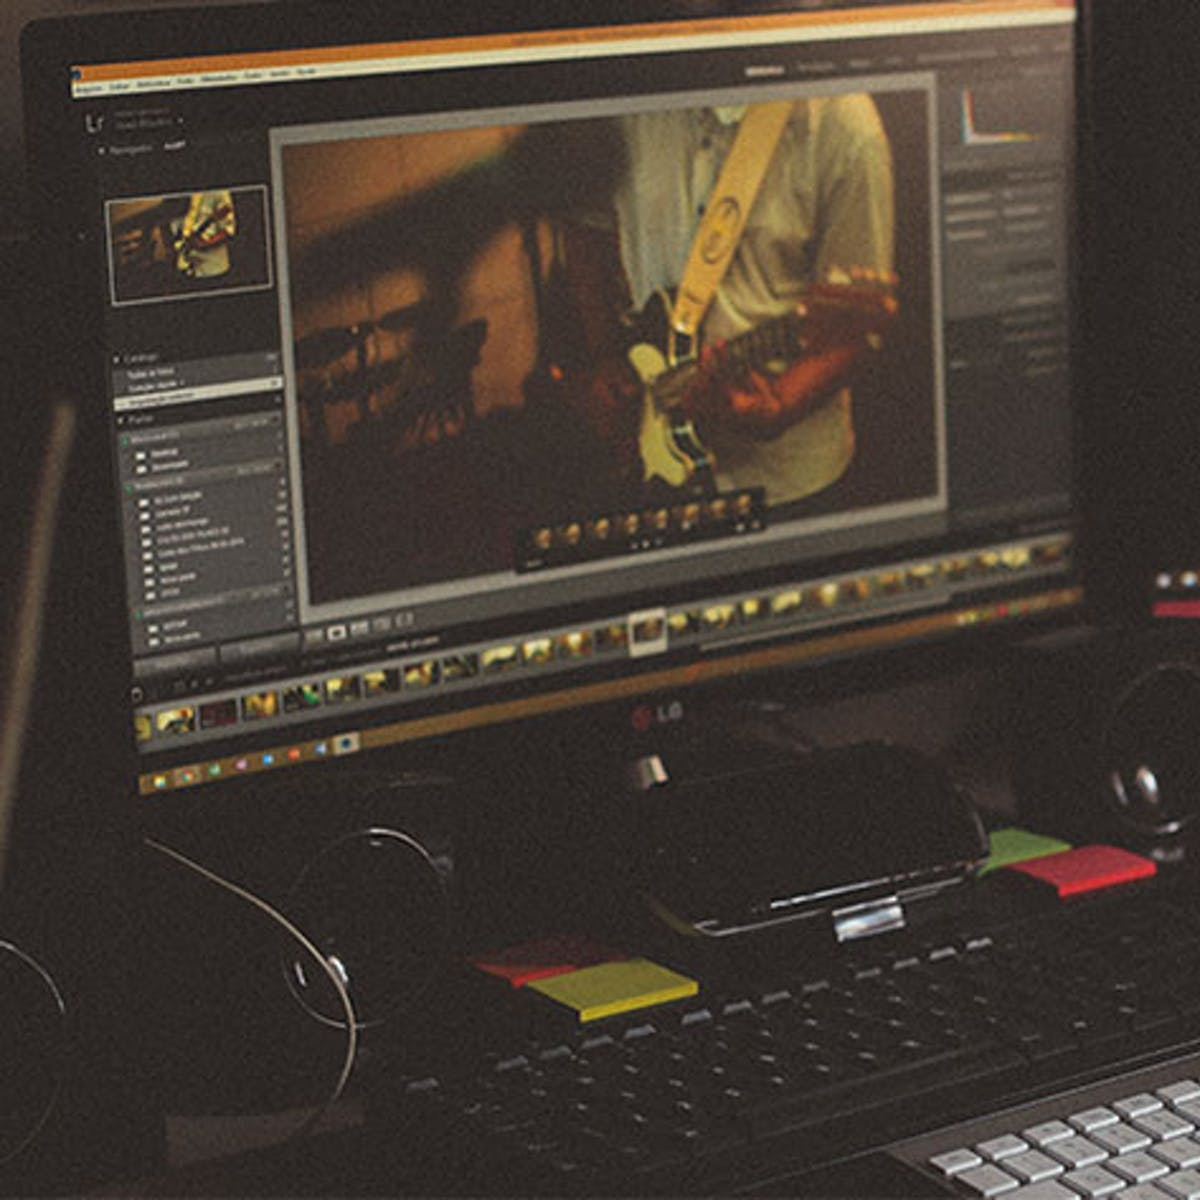 Learn Photoshop Skills From the Masters With This $19 Bundle